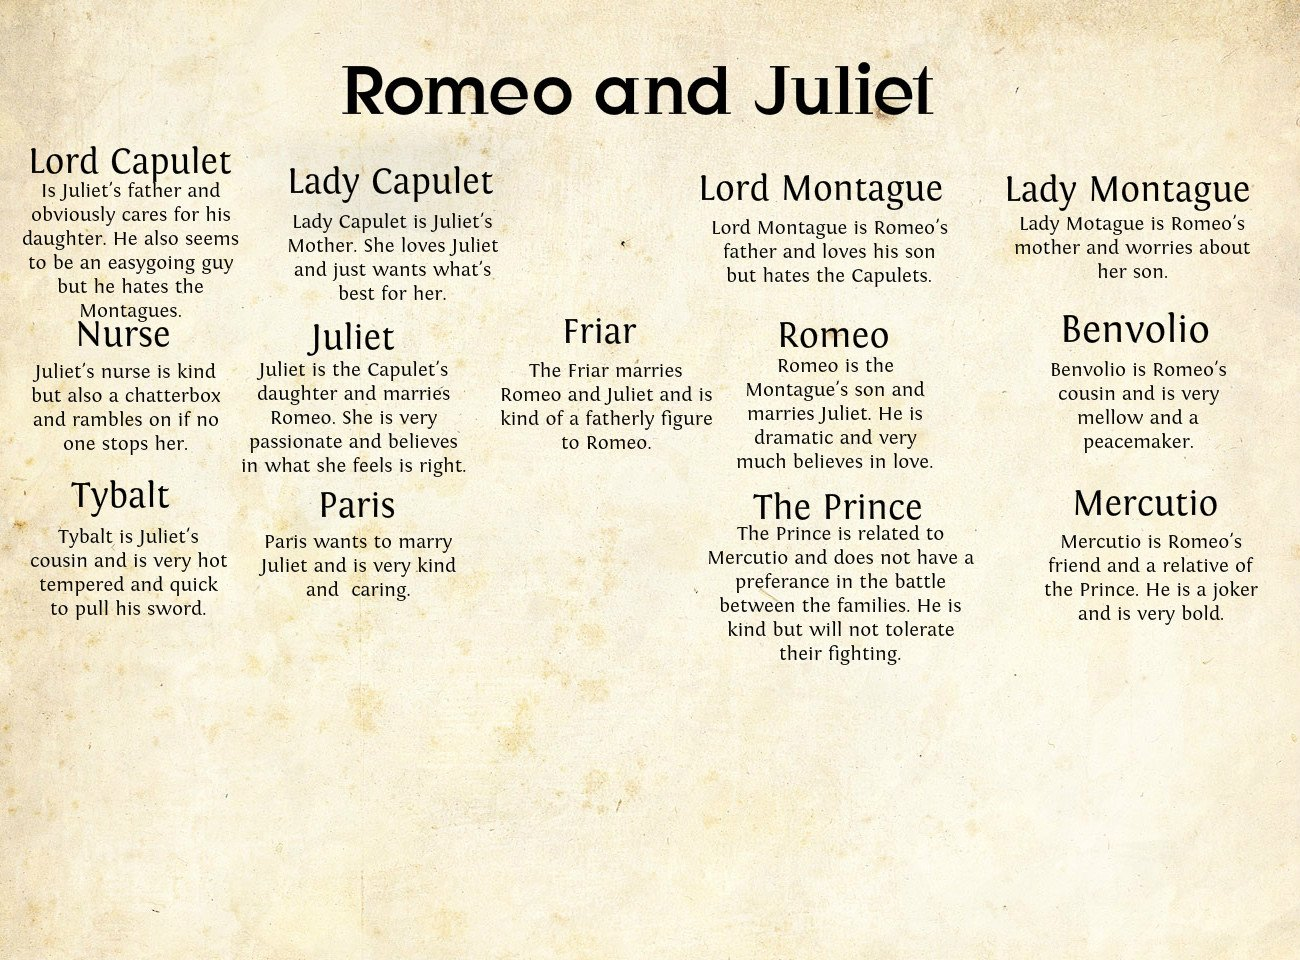 Romeo And Juliet Character Quotes. QuotesGram